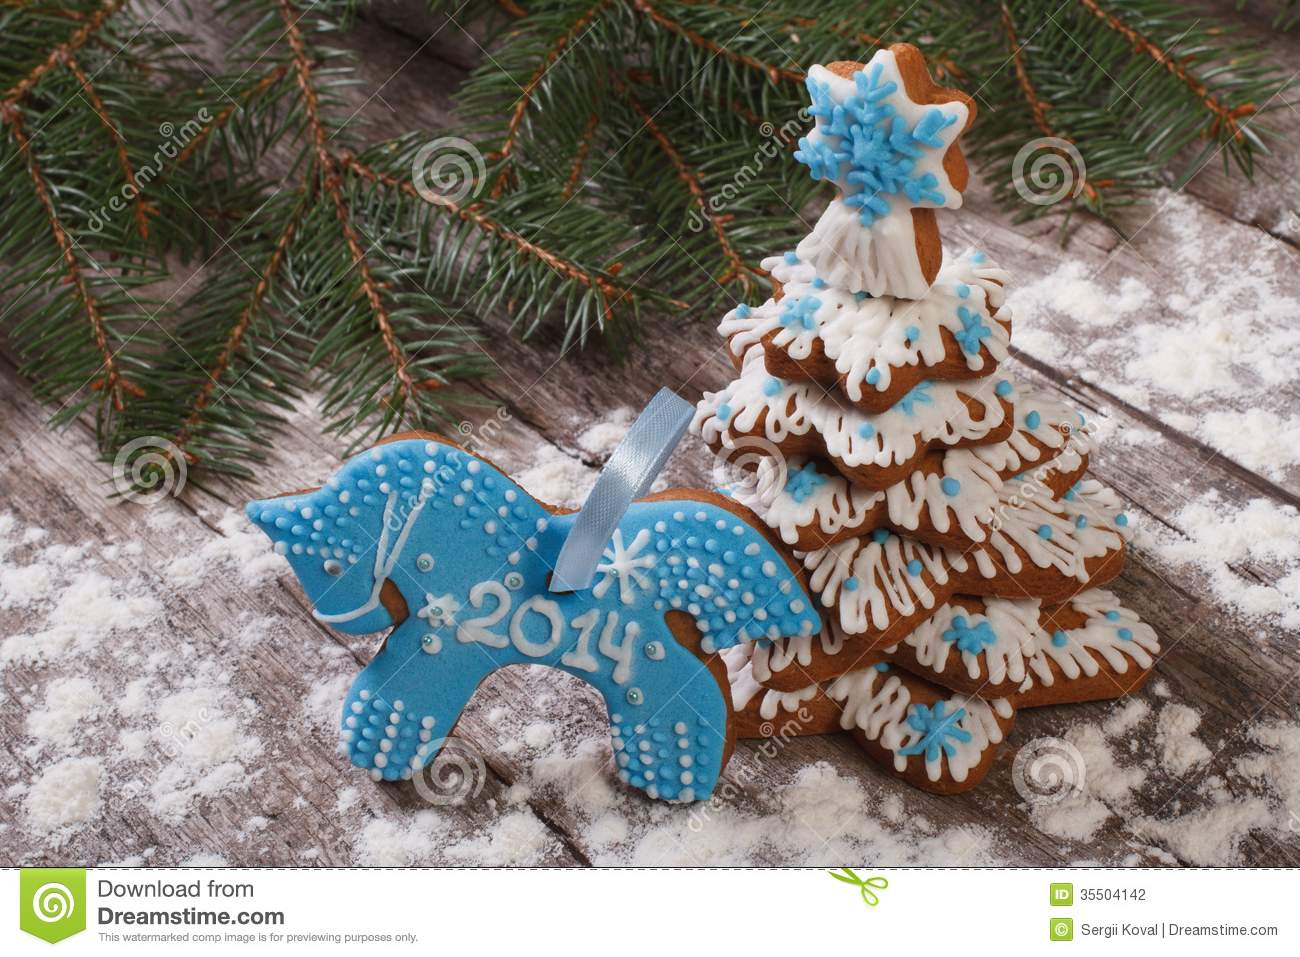 Blue Horse Cookies And Christmas Tree Stock Photo Image Of Bakery Baked 35504142